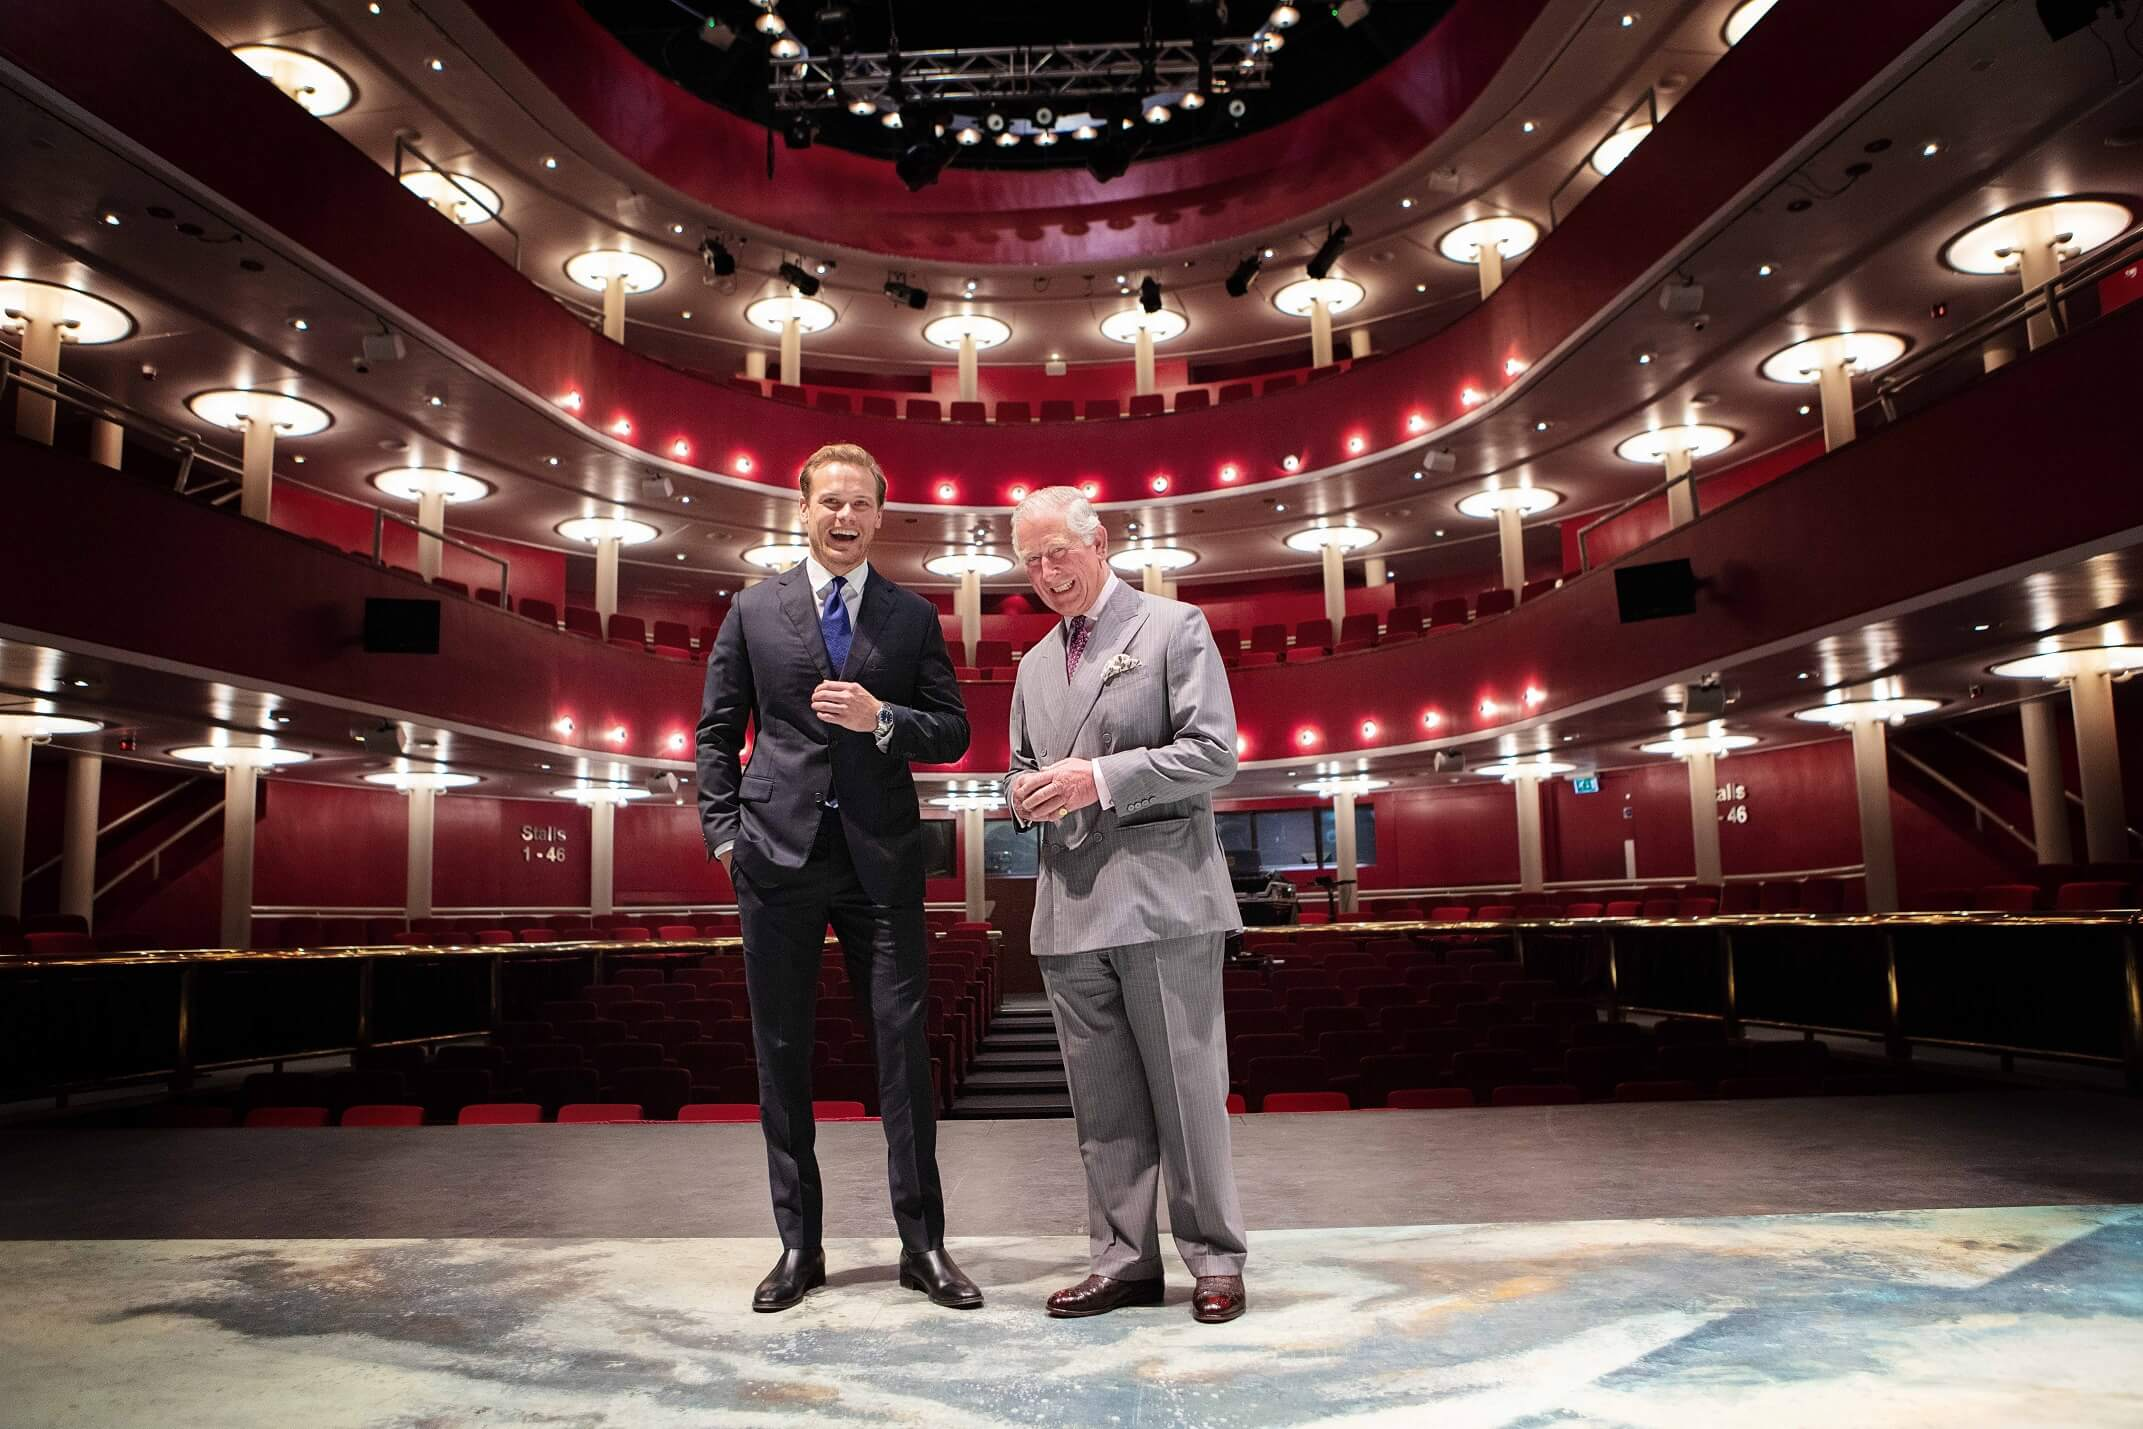 Royal Conservatoire of Scotland delighted by extension of royal patronage Image